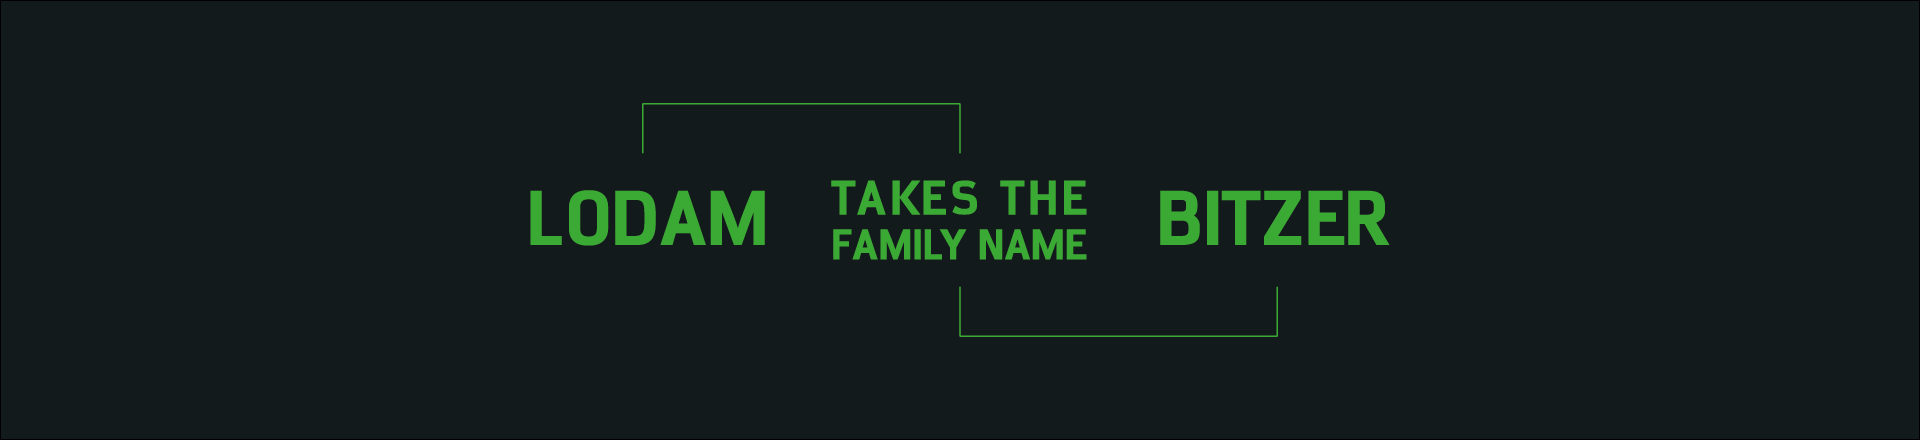 Lodam takes the family name